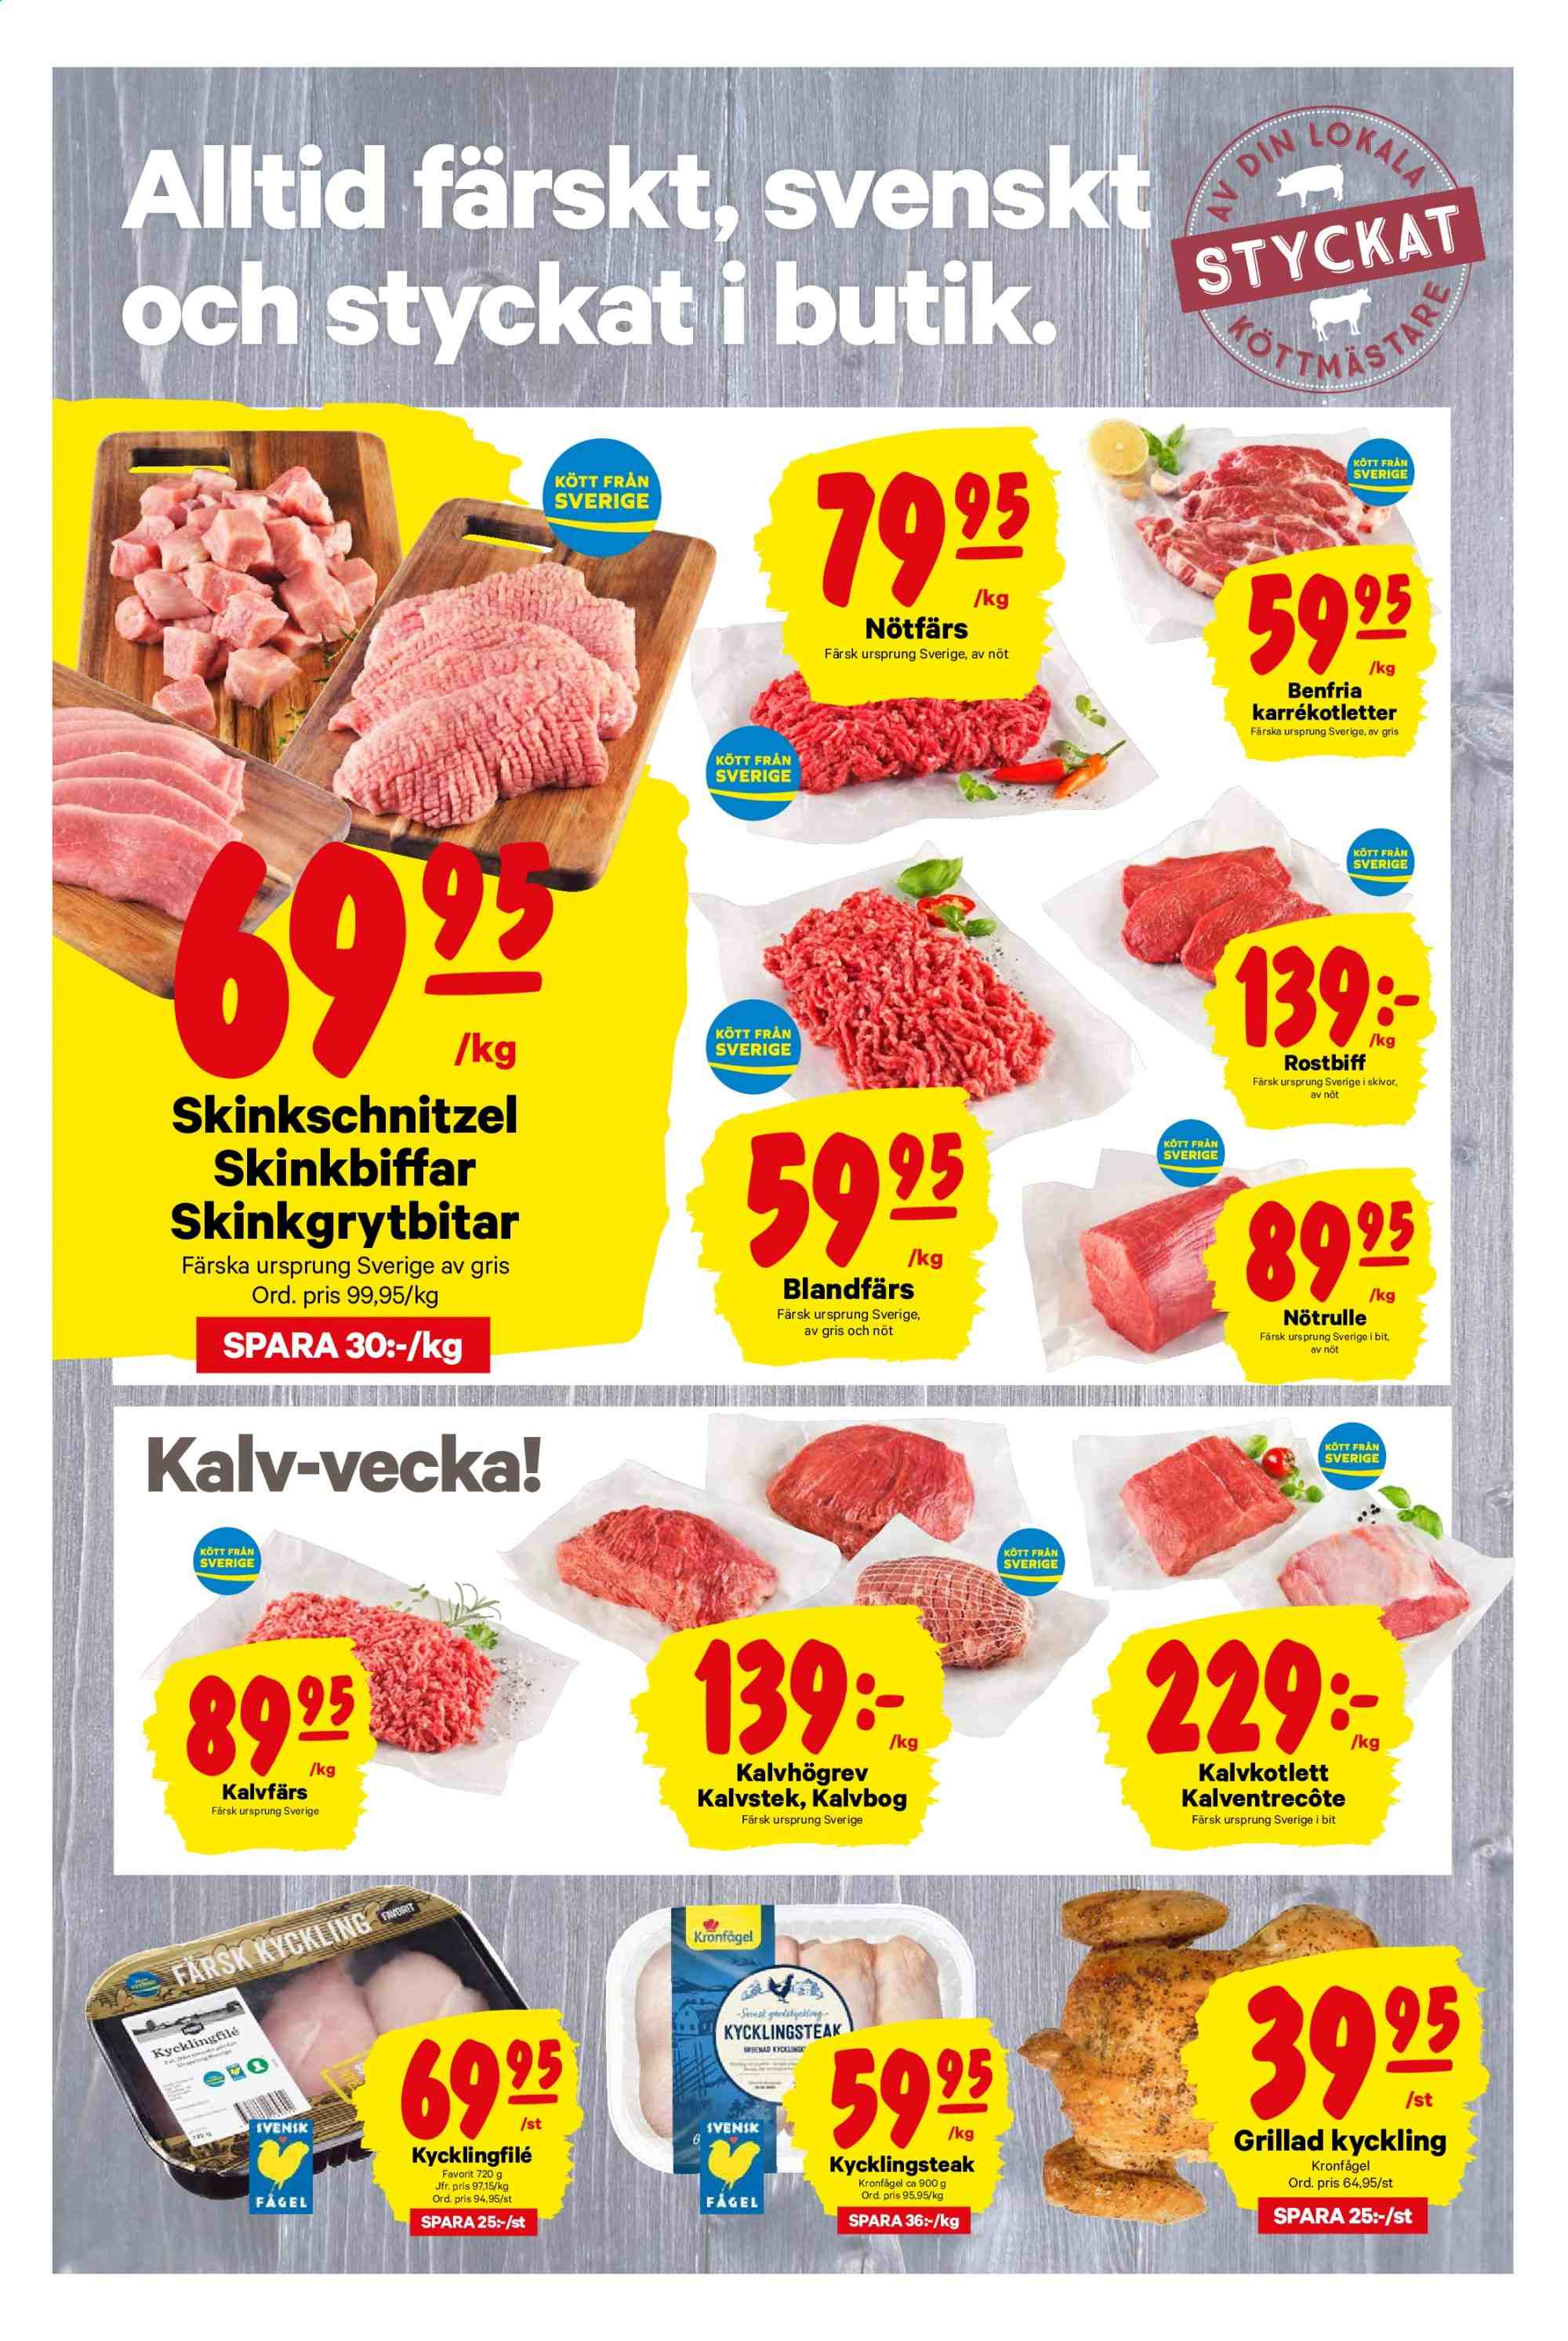 City Gross reklamblad - 30/9 2019 - 6/10 2019. Sida 2.